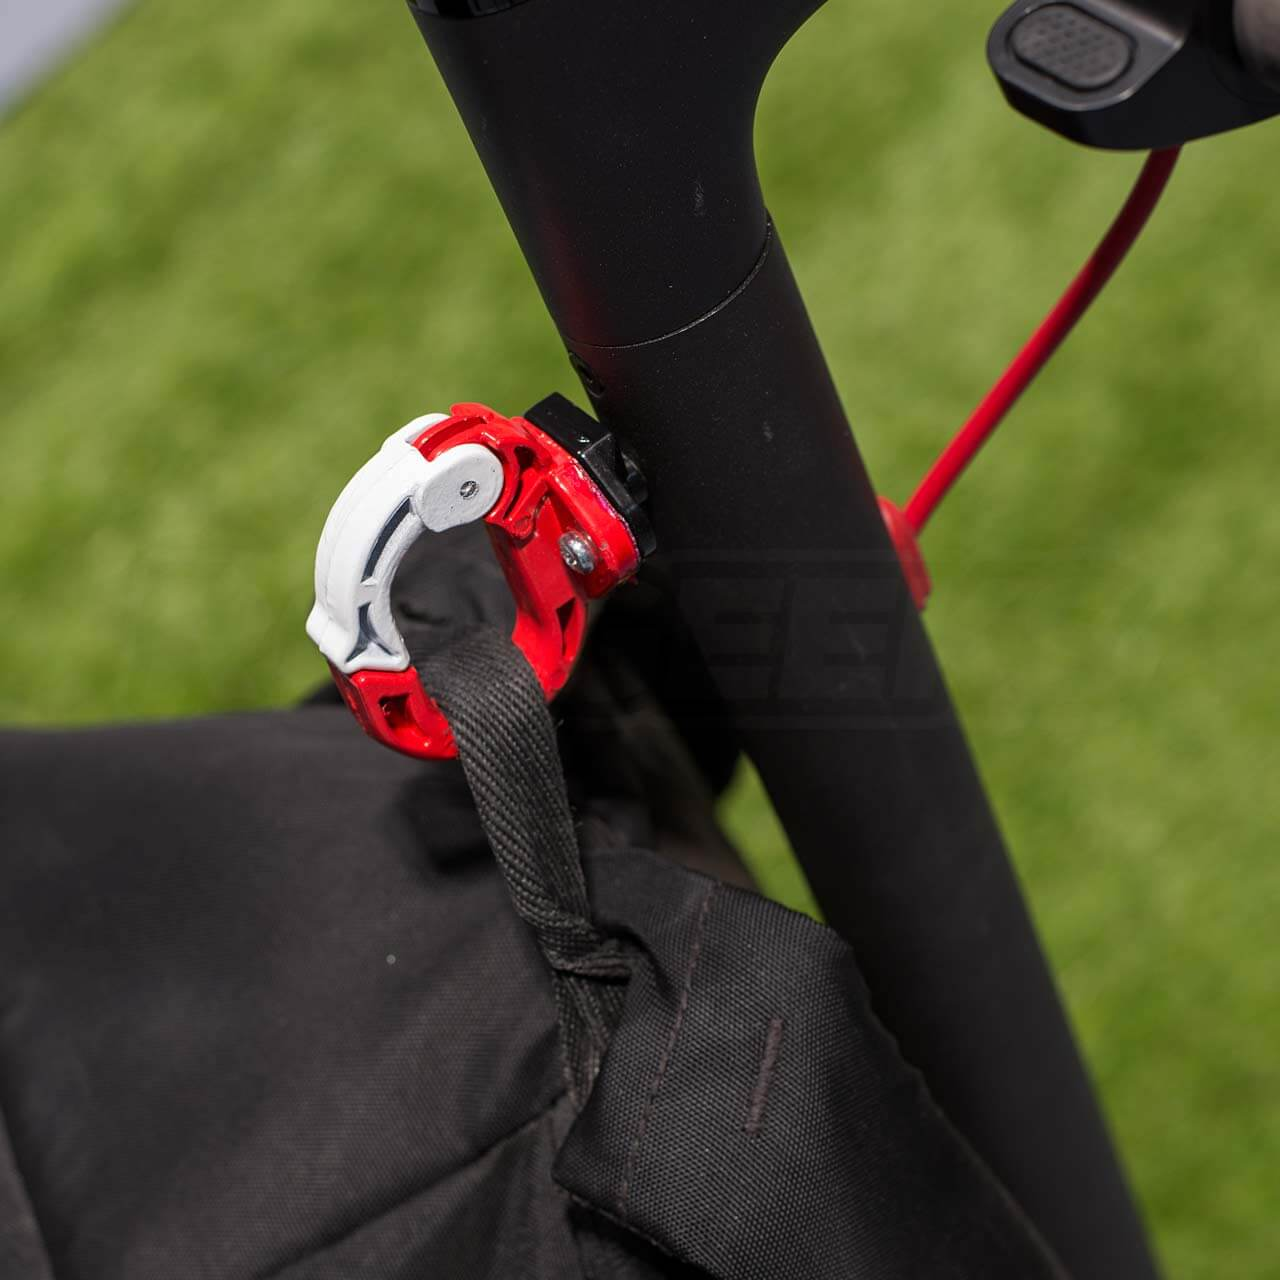 Mi-Electric-Scooter-Accessories-scooter-bag-hook-fitting-hook-heavy-bag